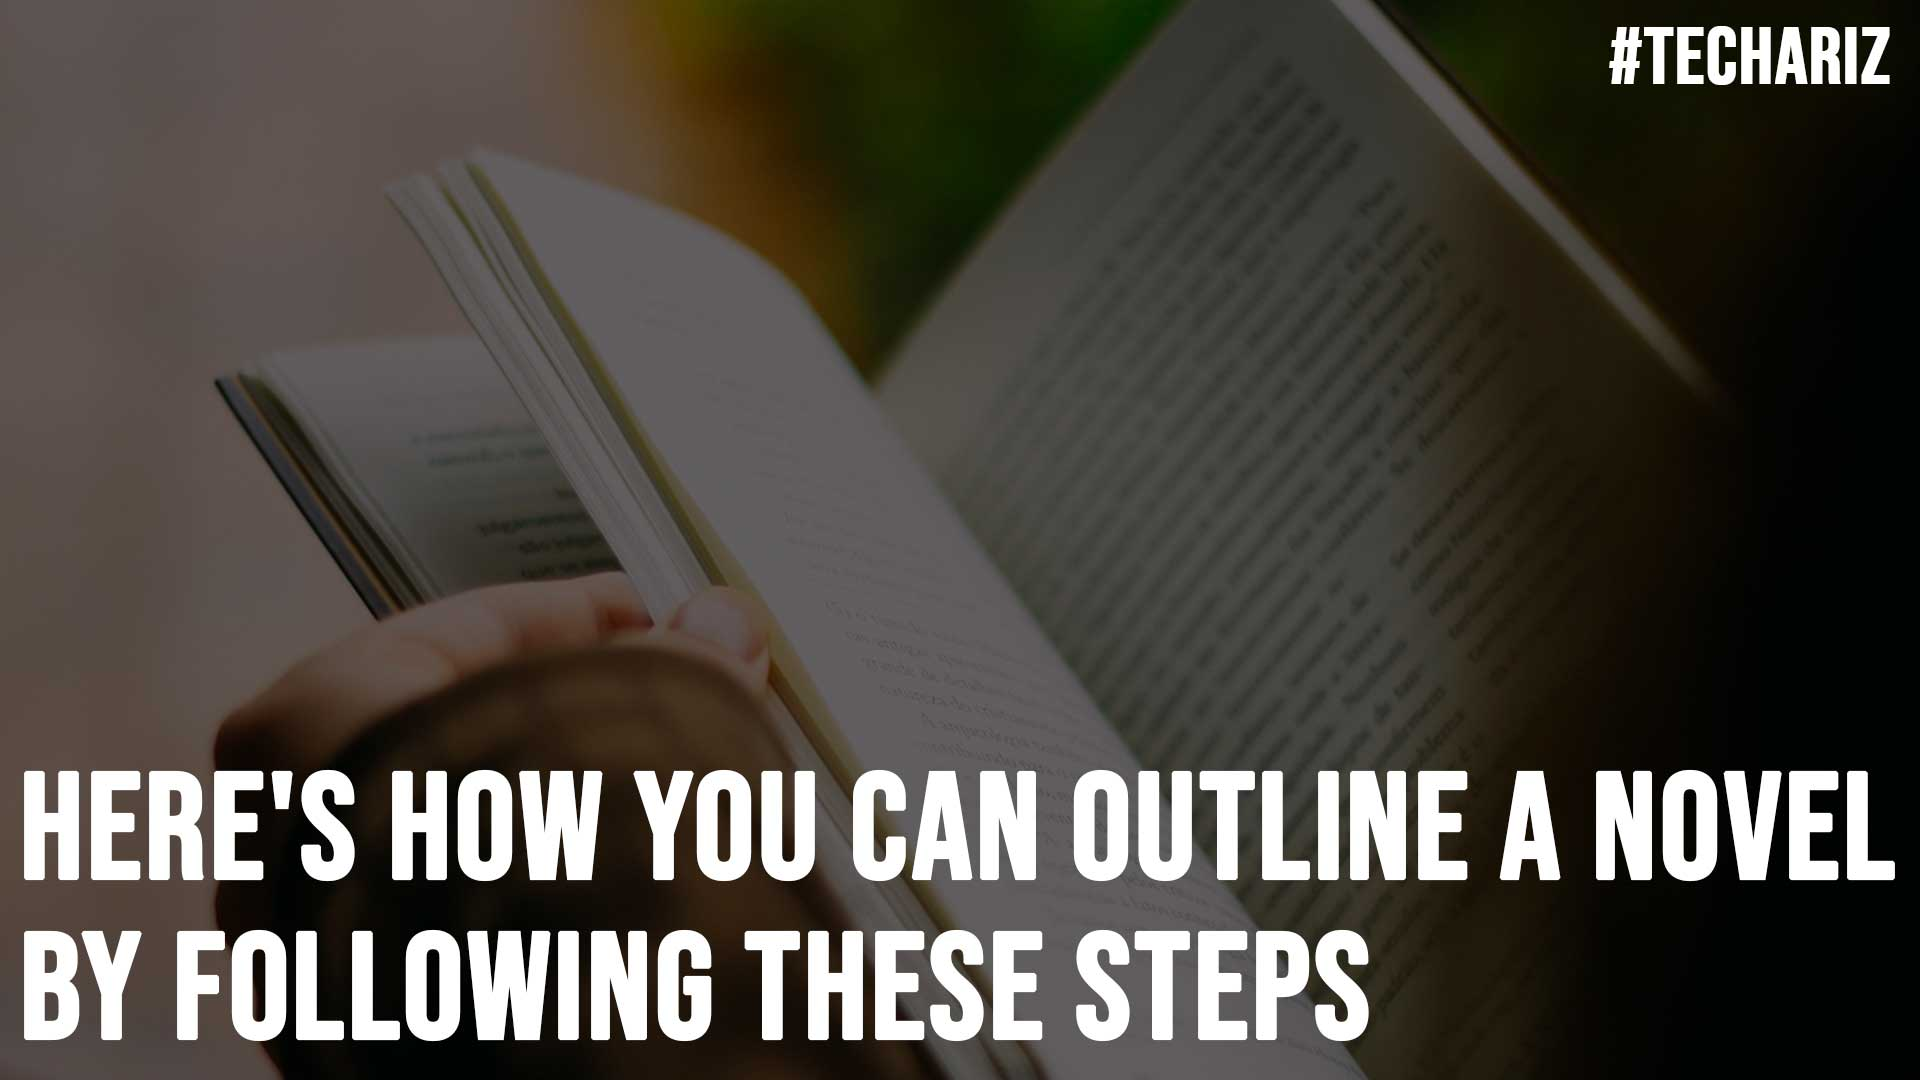 Heres How You Can Outline A Novel By Following These Steps